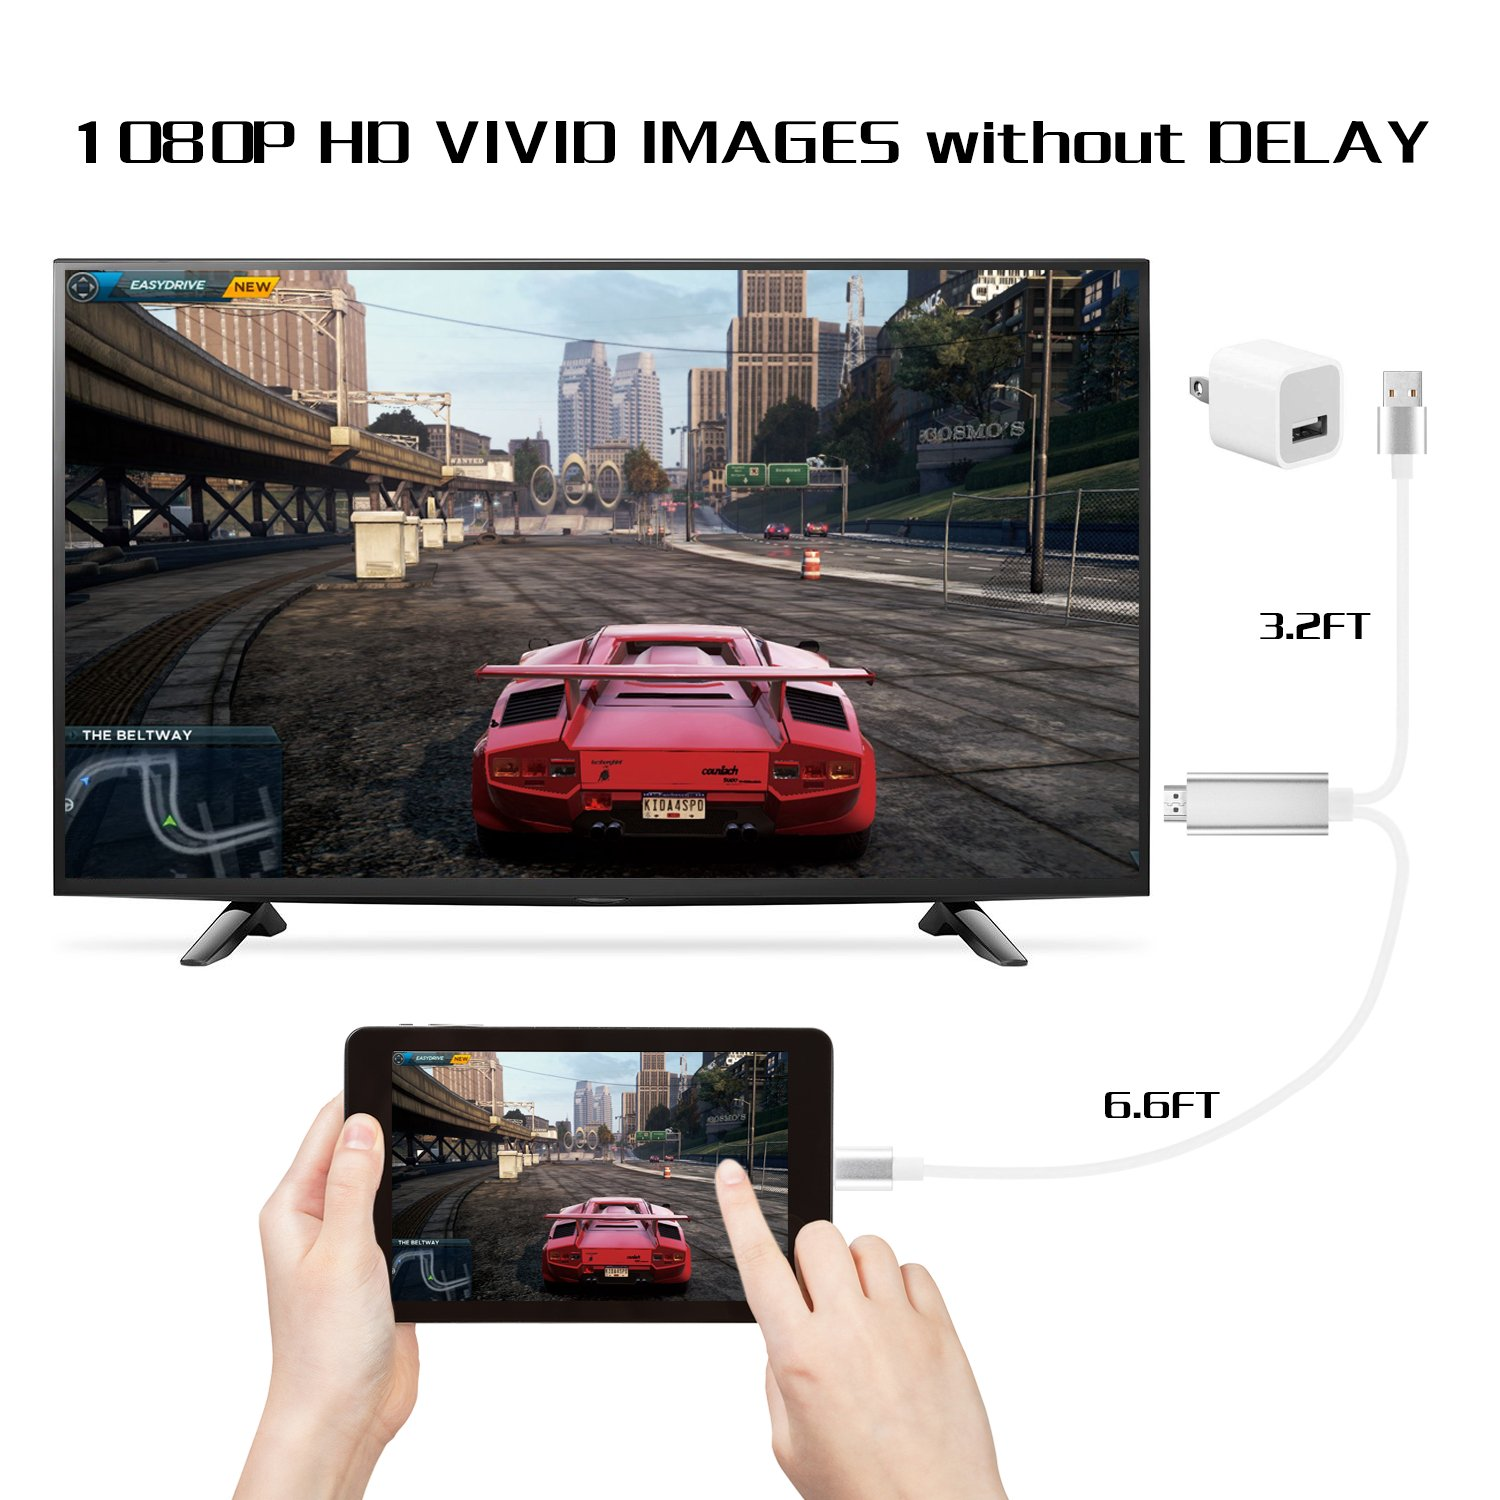 Silver Digital AV Adapter 1080p HD TV Connector Cord Compatible with iPhone Xs Max XR 8 7 6Plus iPod to TV Projector Monitor Bambud Compatible with iPhone iPad to HDMI Adapter Cable 6.6ft iPad